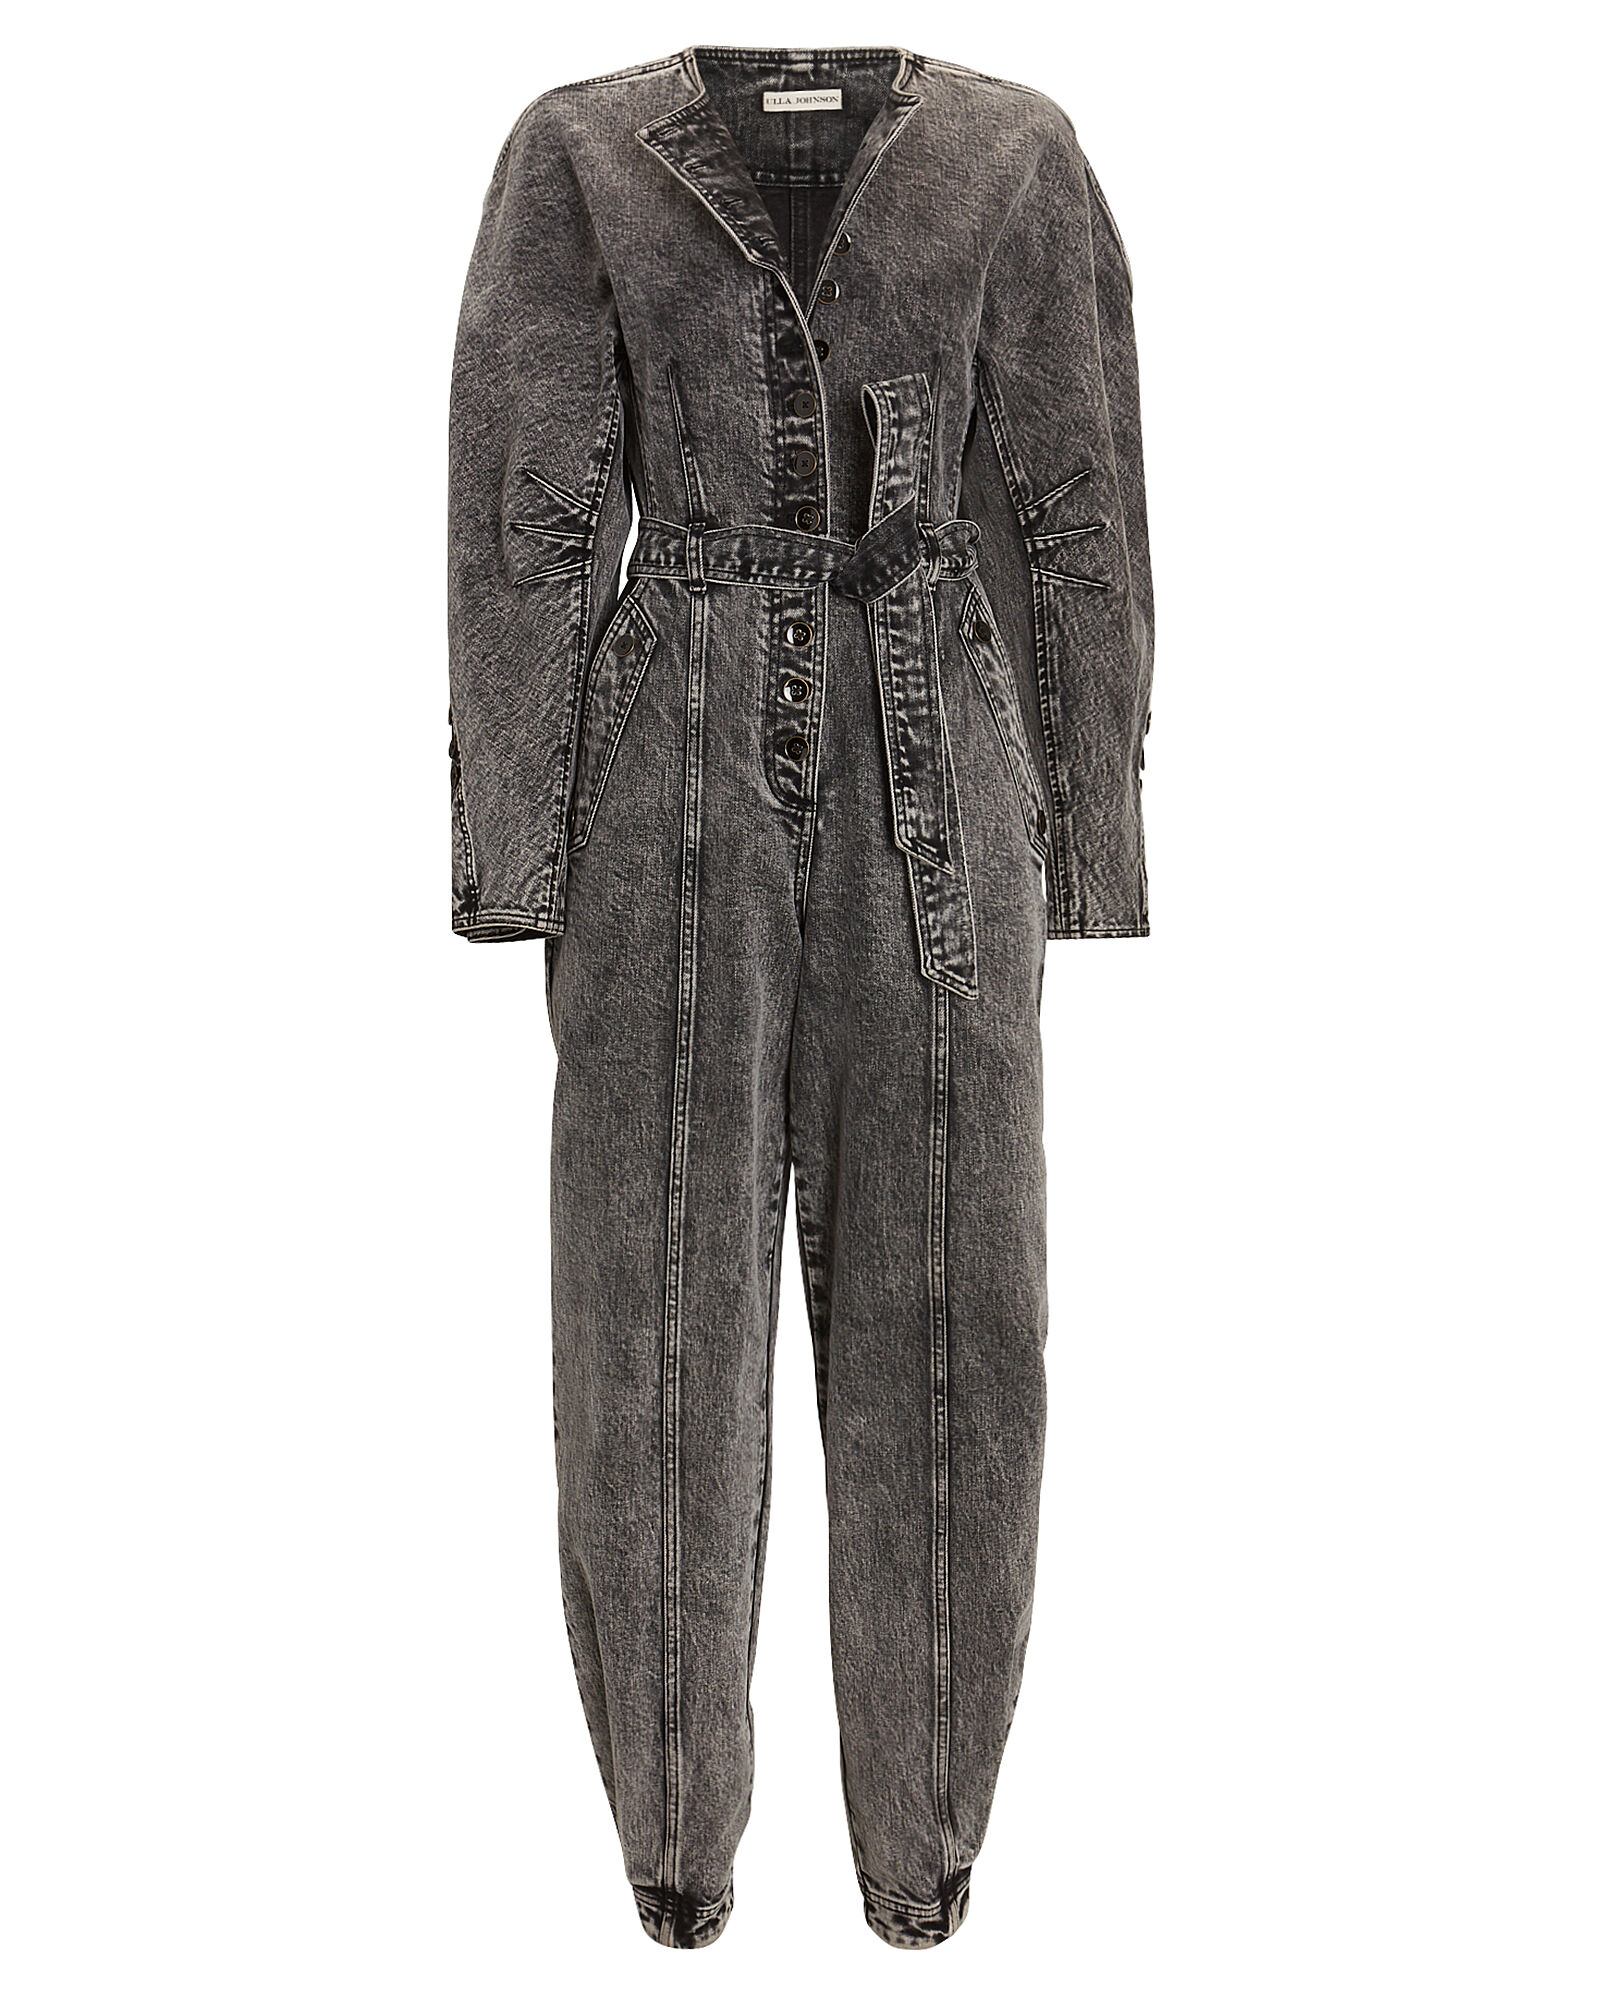 Atlas Belted Denim Jumpsuit, ACID WASH DENIM, hi-res